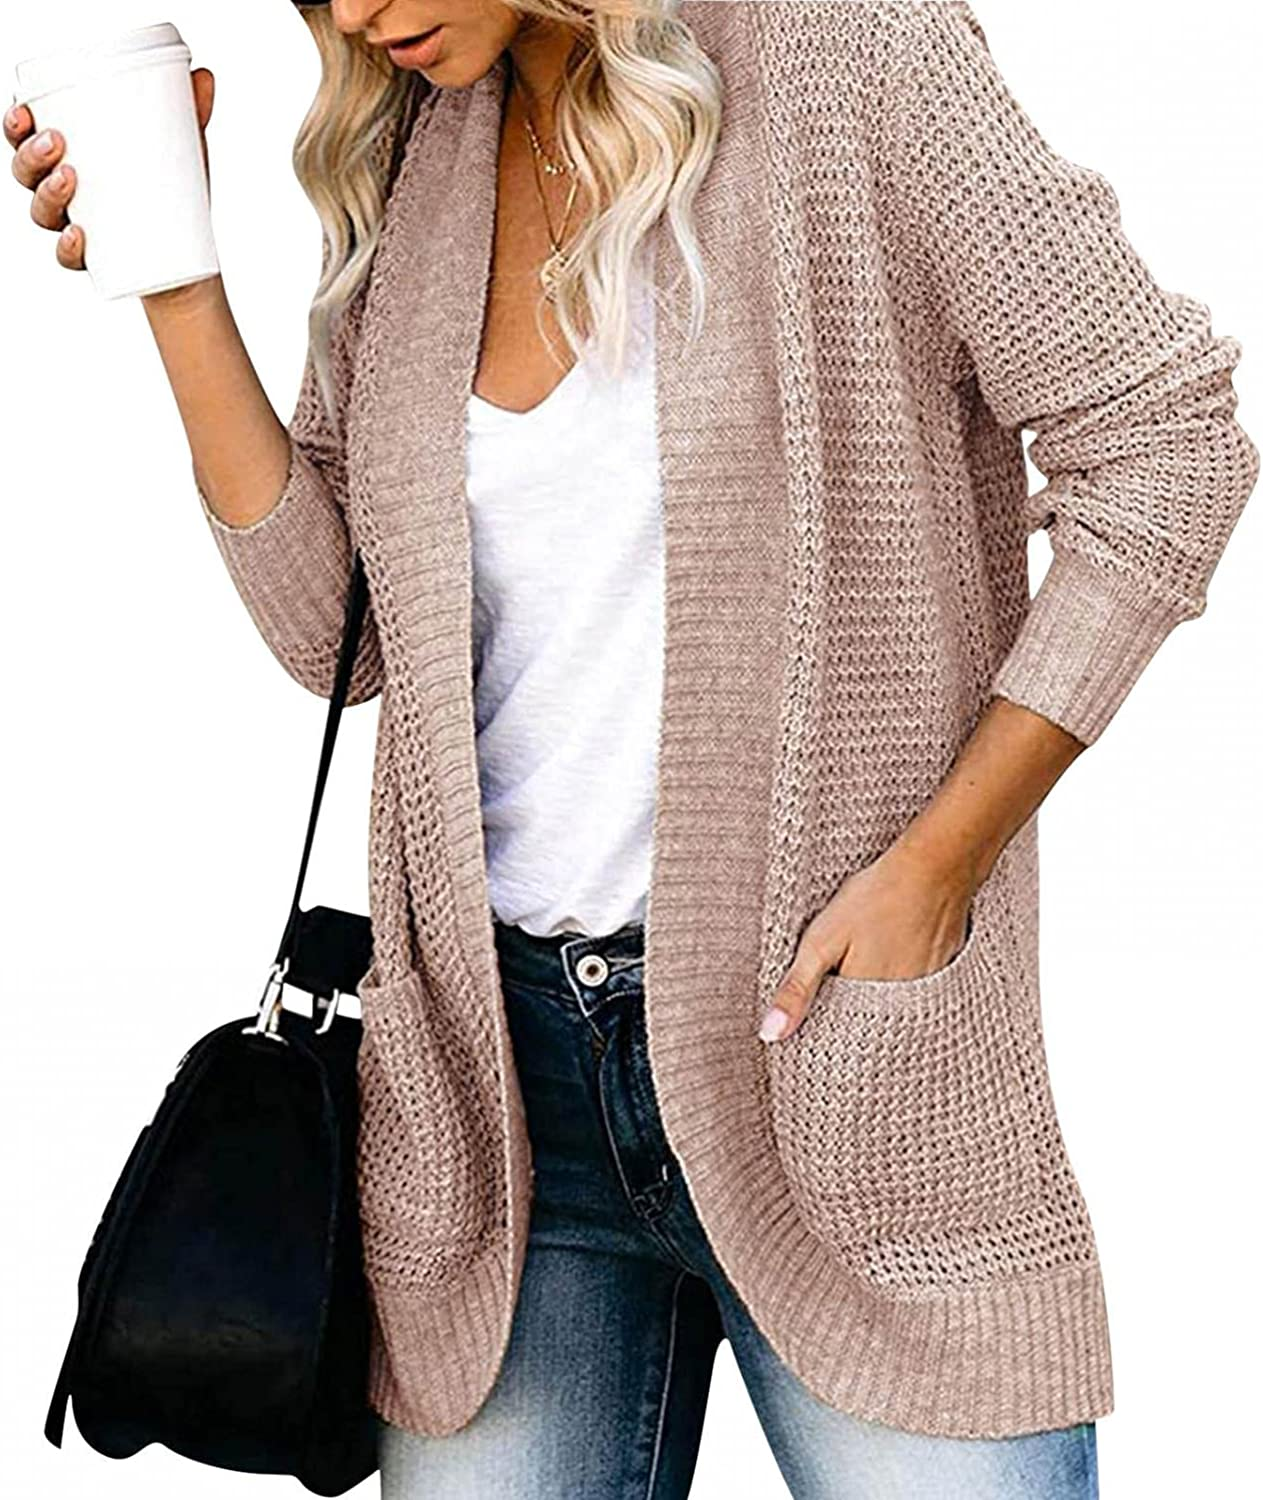 Cardigan Sweaters for Women,Women's Long Sleeve Cable Knit Sweater Open Front Cardigan Oversized Outerwear with Pockets